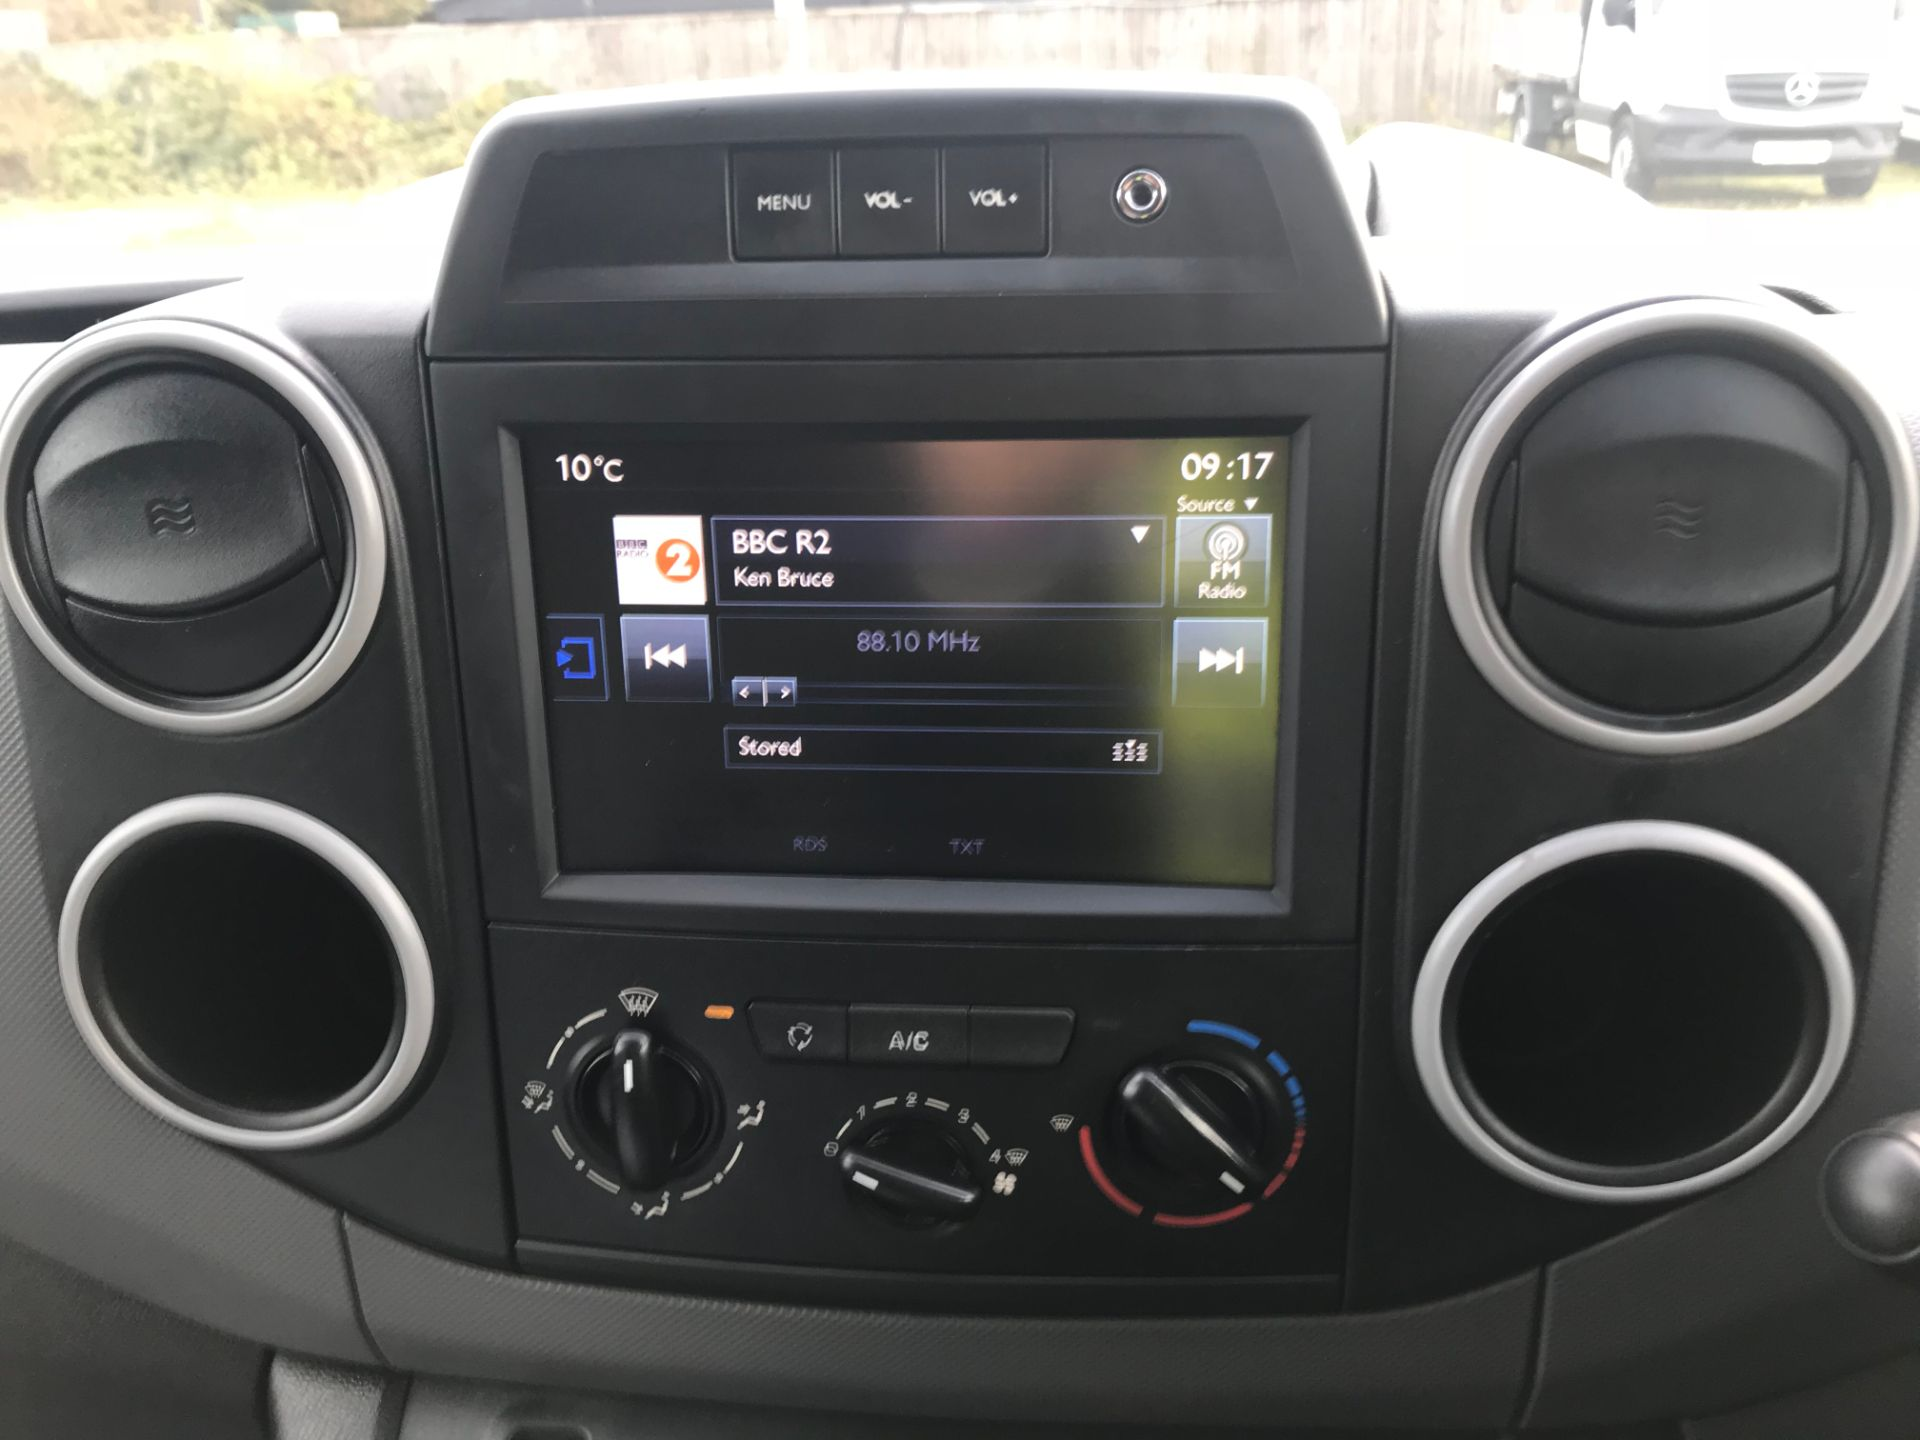 2018 Peugeot Partner 850 1.6 Bluehdi 100 Professional Van [Non Ss]*Restricted to 69MPH* (NV18PXR) Image 28